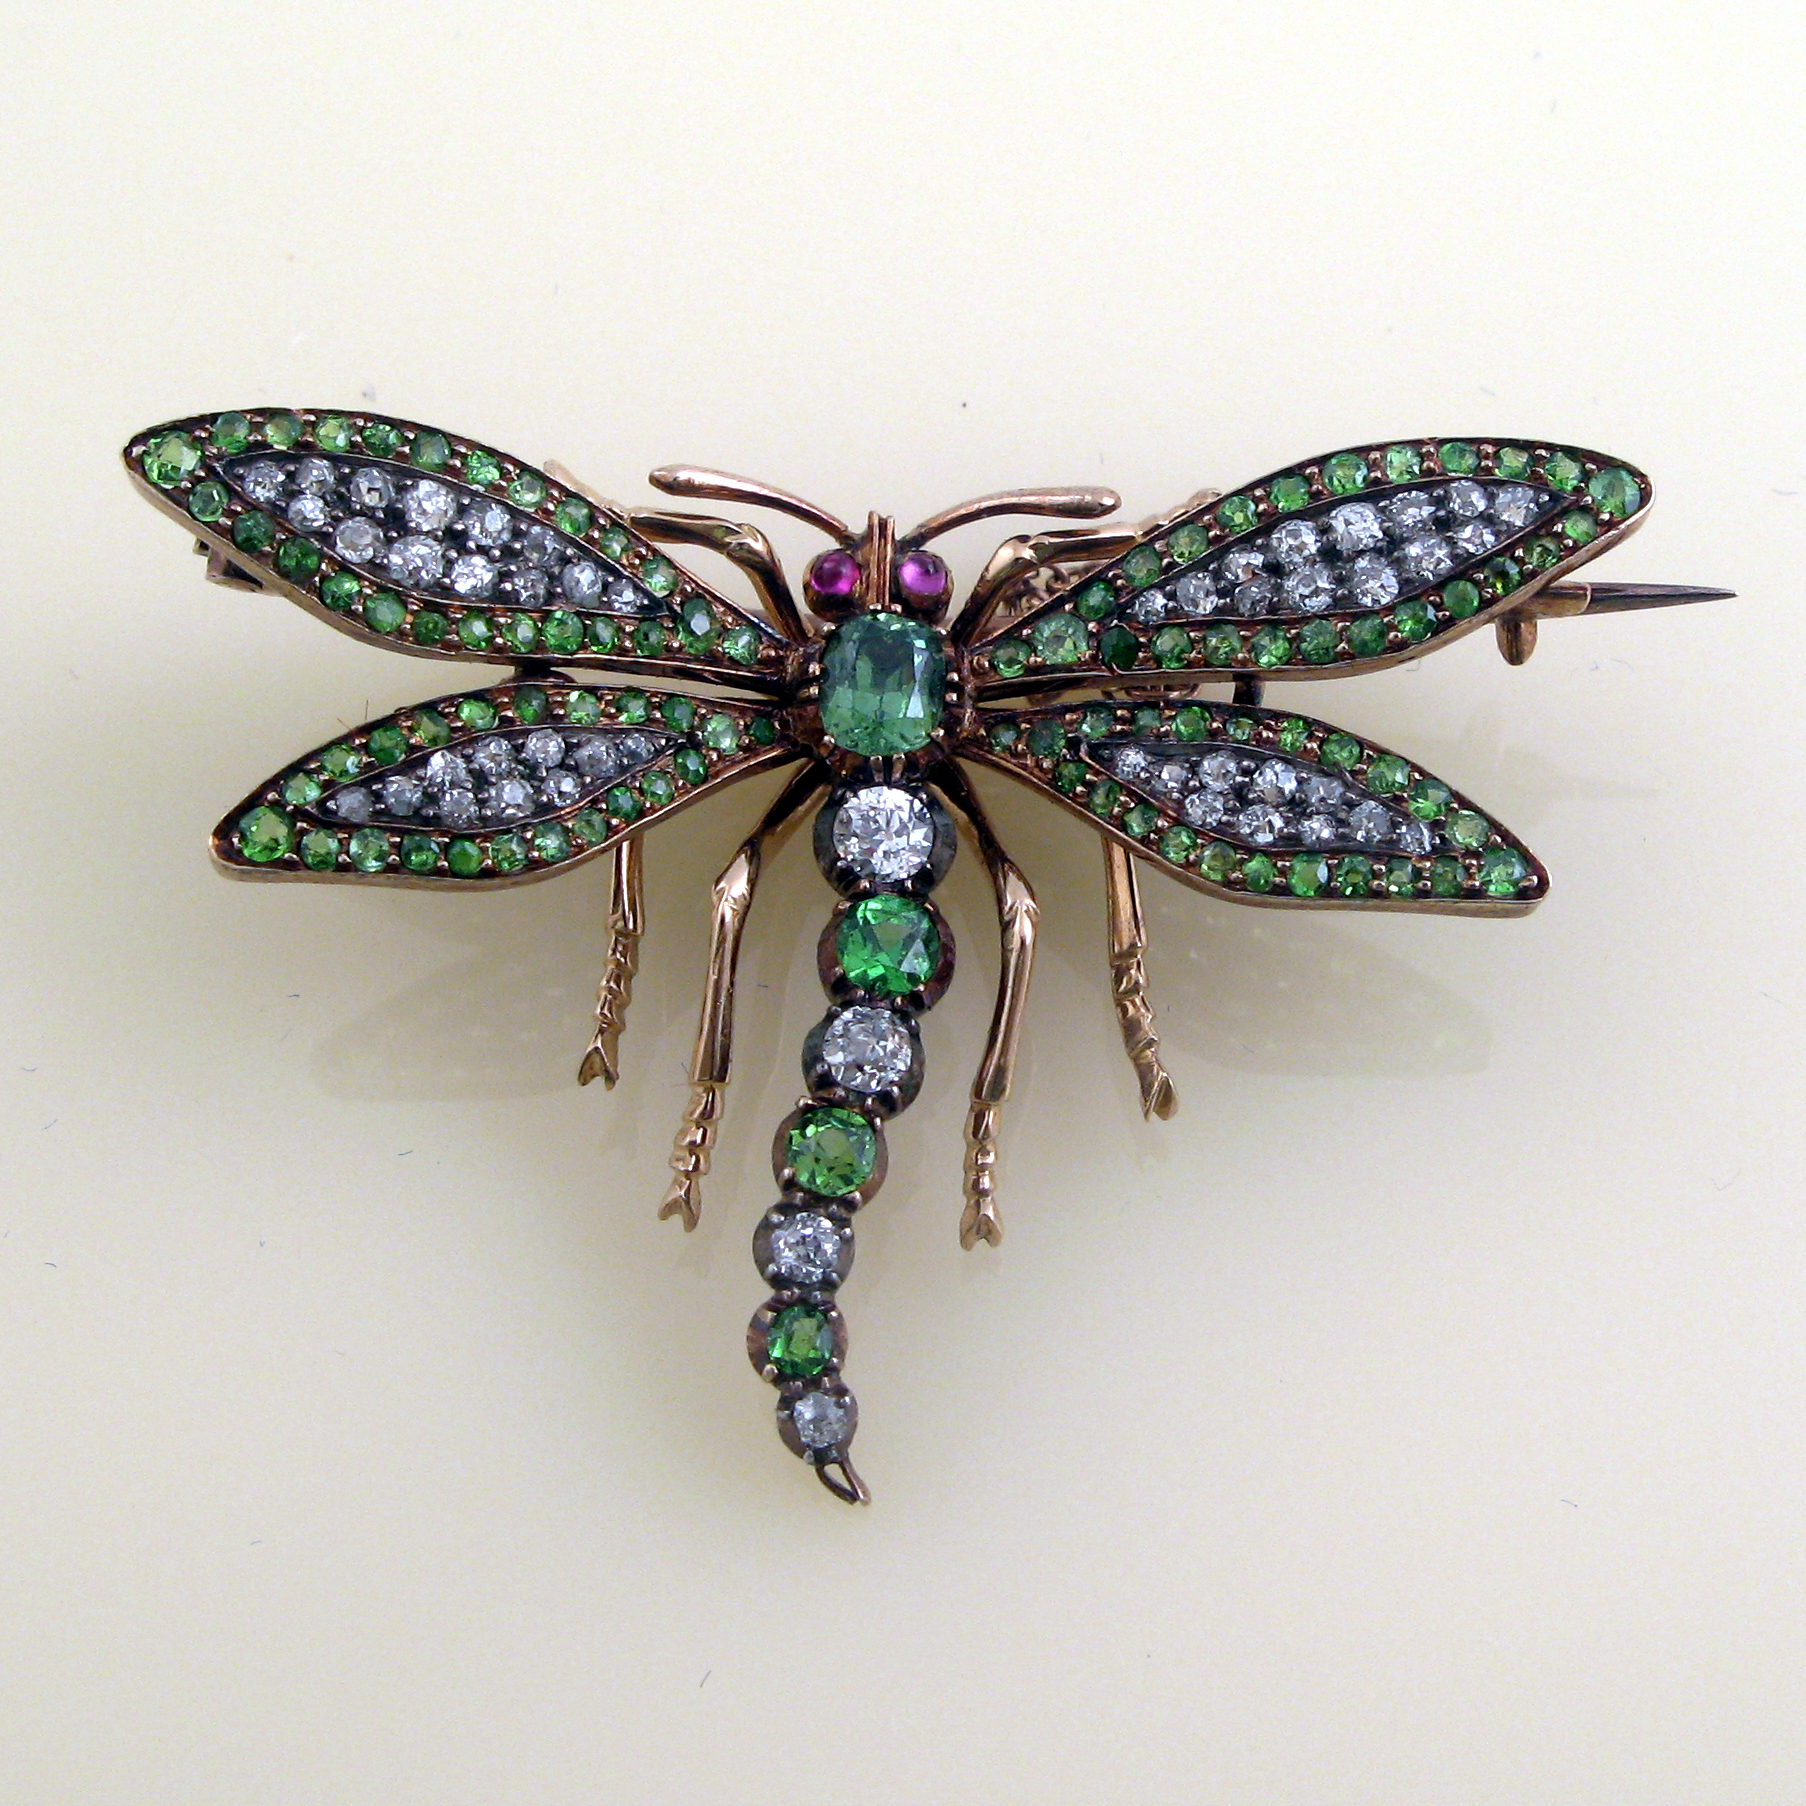 Demantoid diamond dragonfly brooch